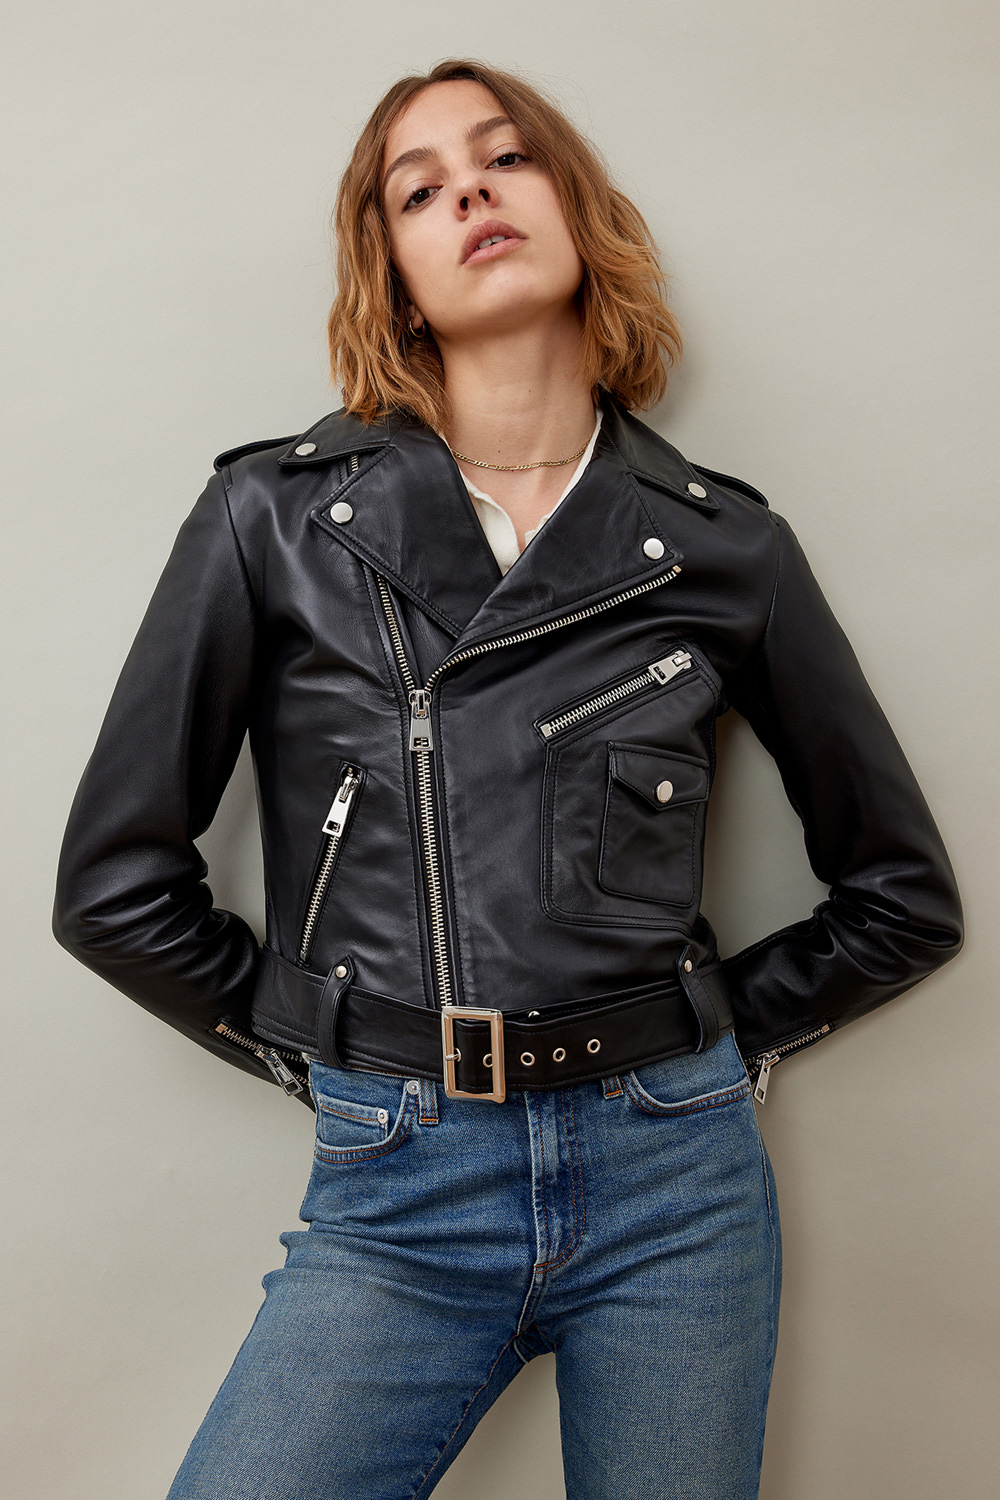 ROY ROGERS: RE-ISSUE LADY LEATHER JACKET